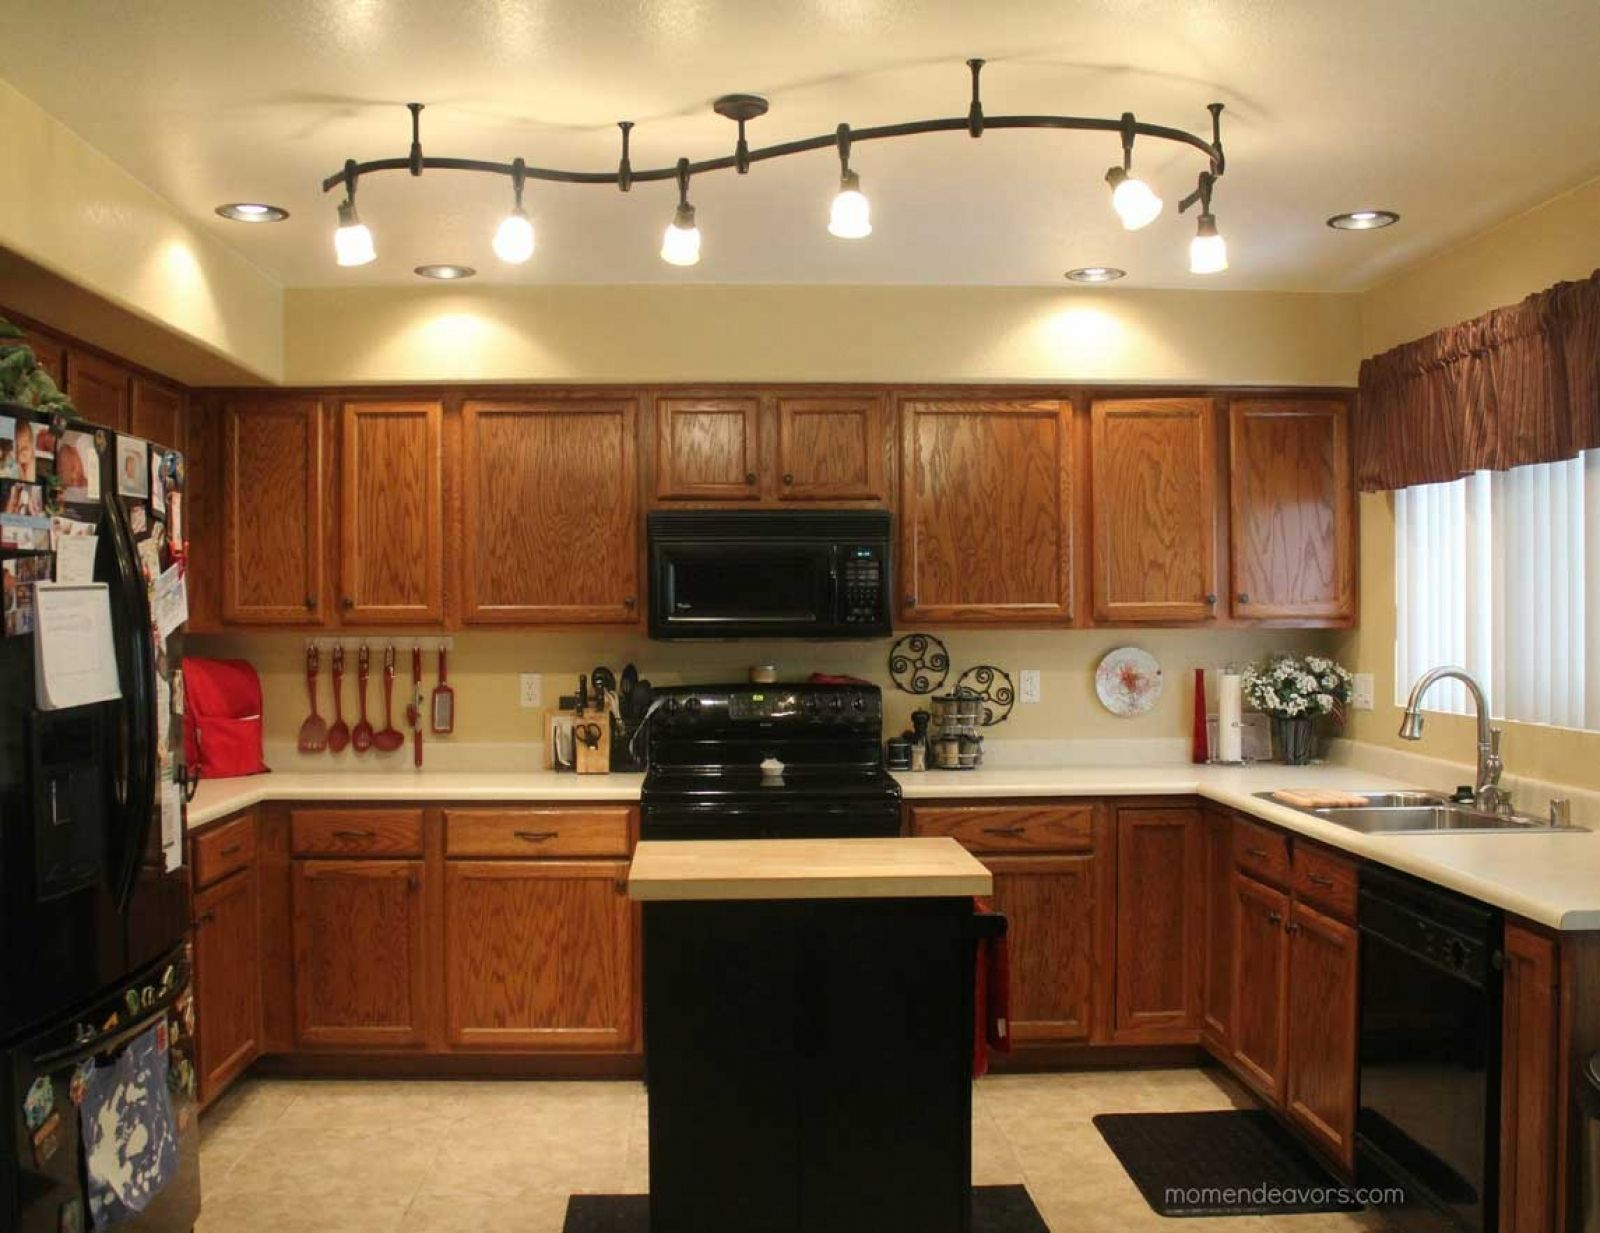 Awesome Kitchen Track Lighting Fixtures For Your Kithen Design Home